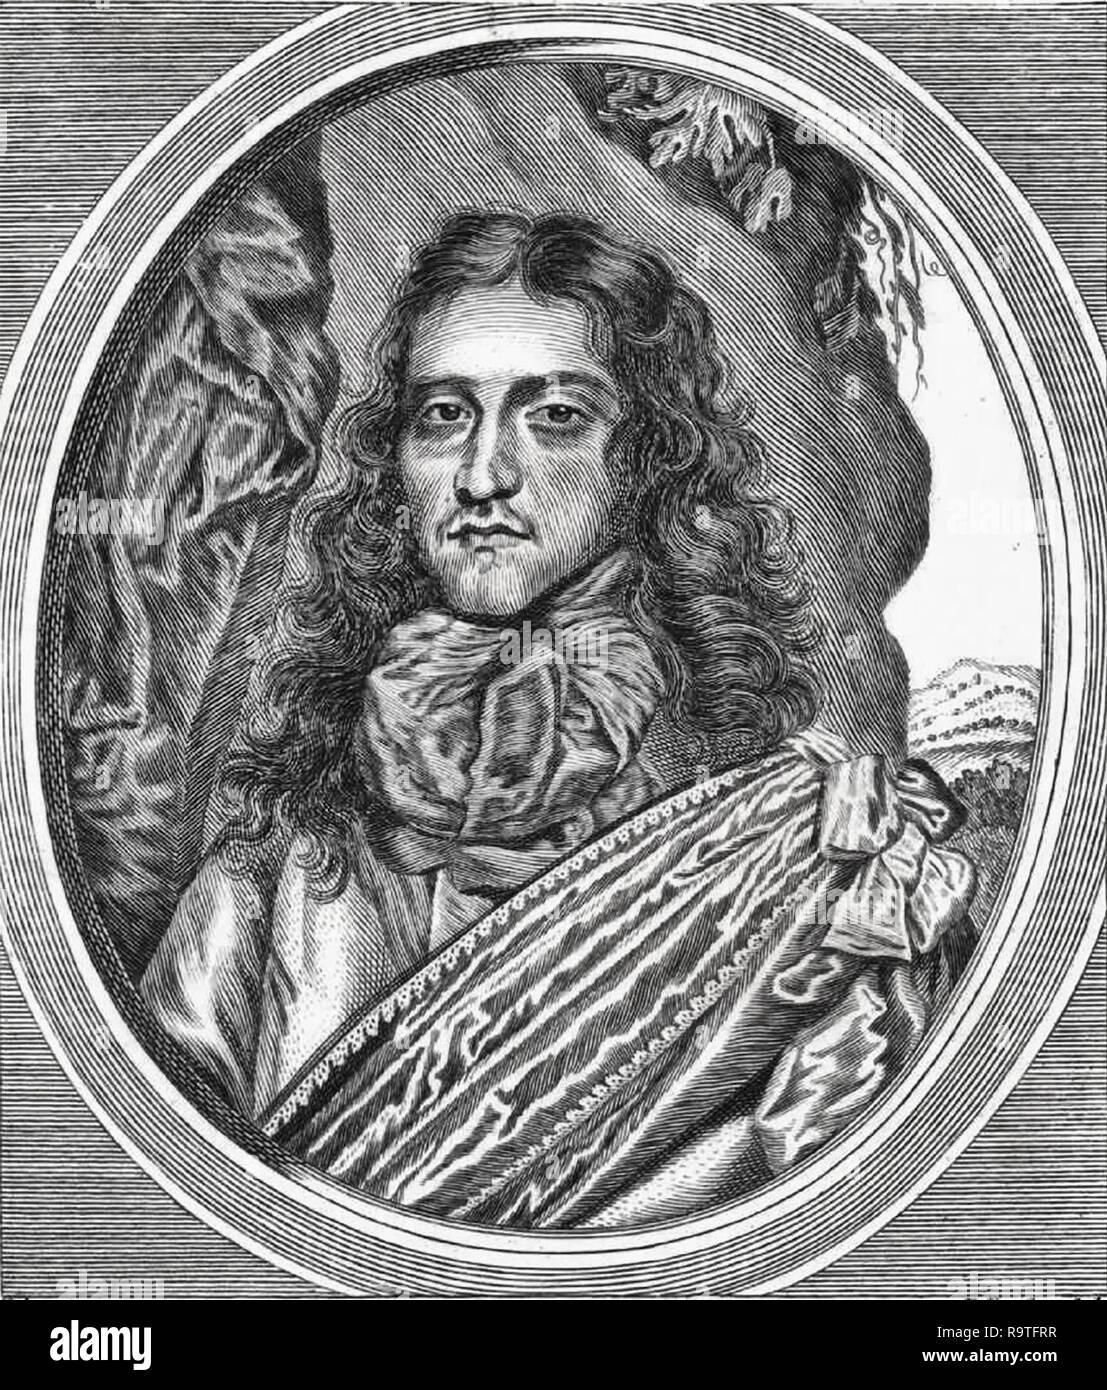 Prince Rupert of the Rhine (1619-1682), Bohemian soldier and inventor. - Stock Image